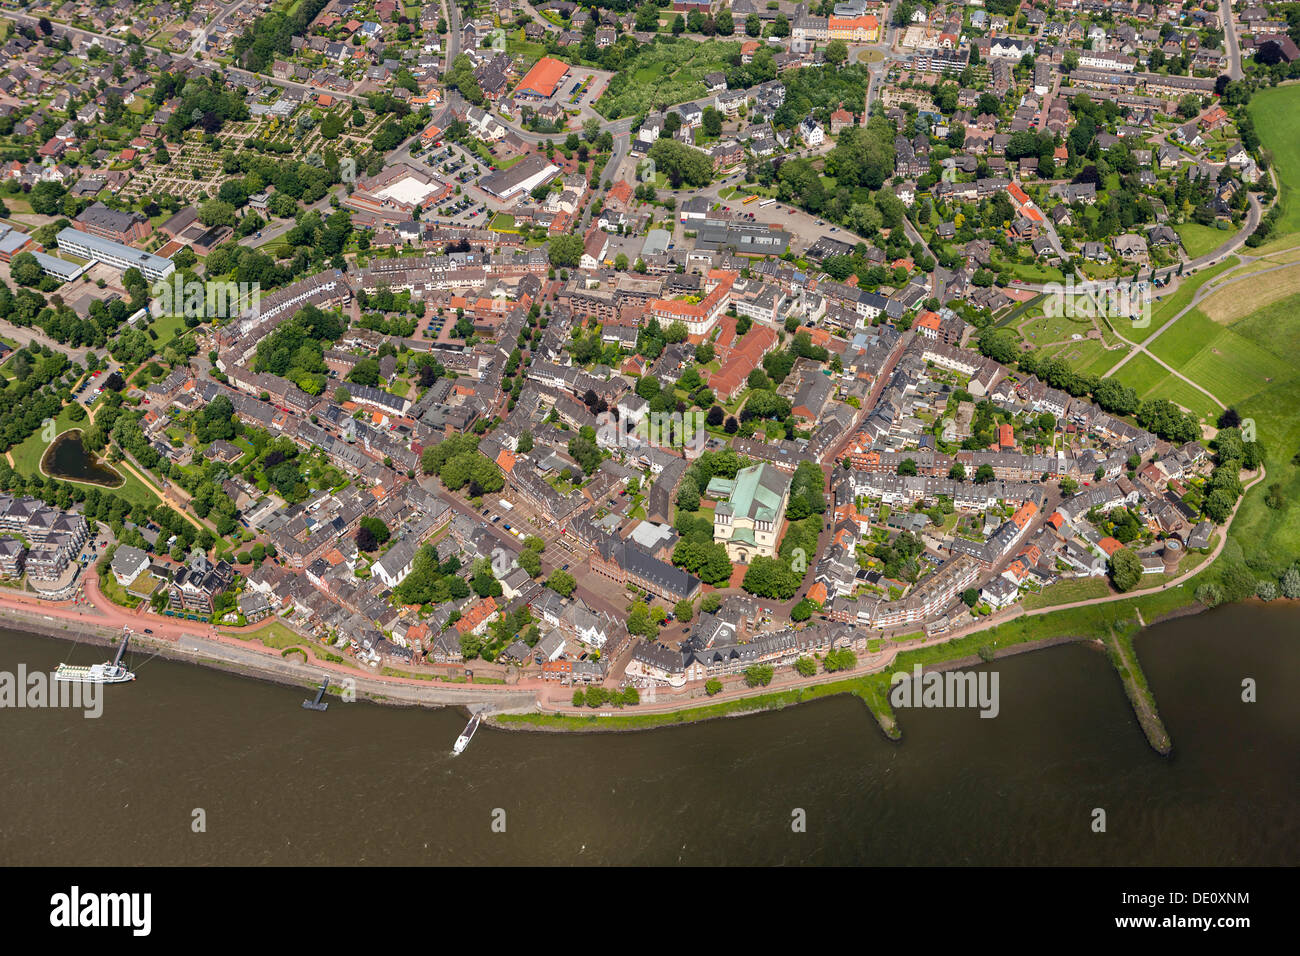 Aerial view, town of Rees, Lower Rhine area, North Rhine-Westphalia - Stock Image